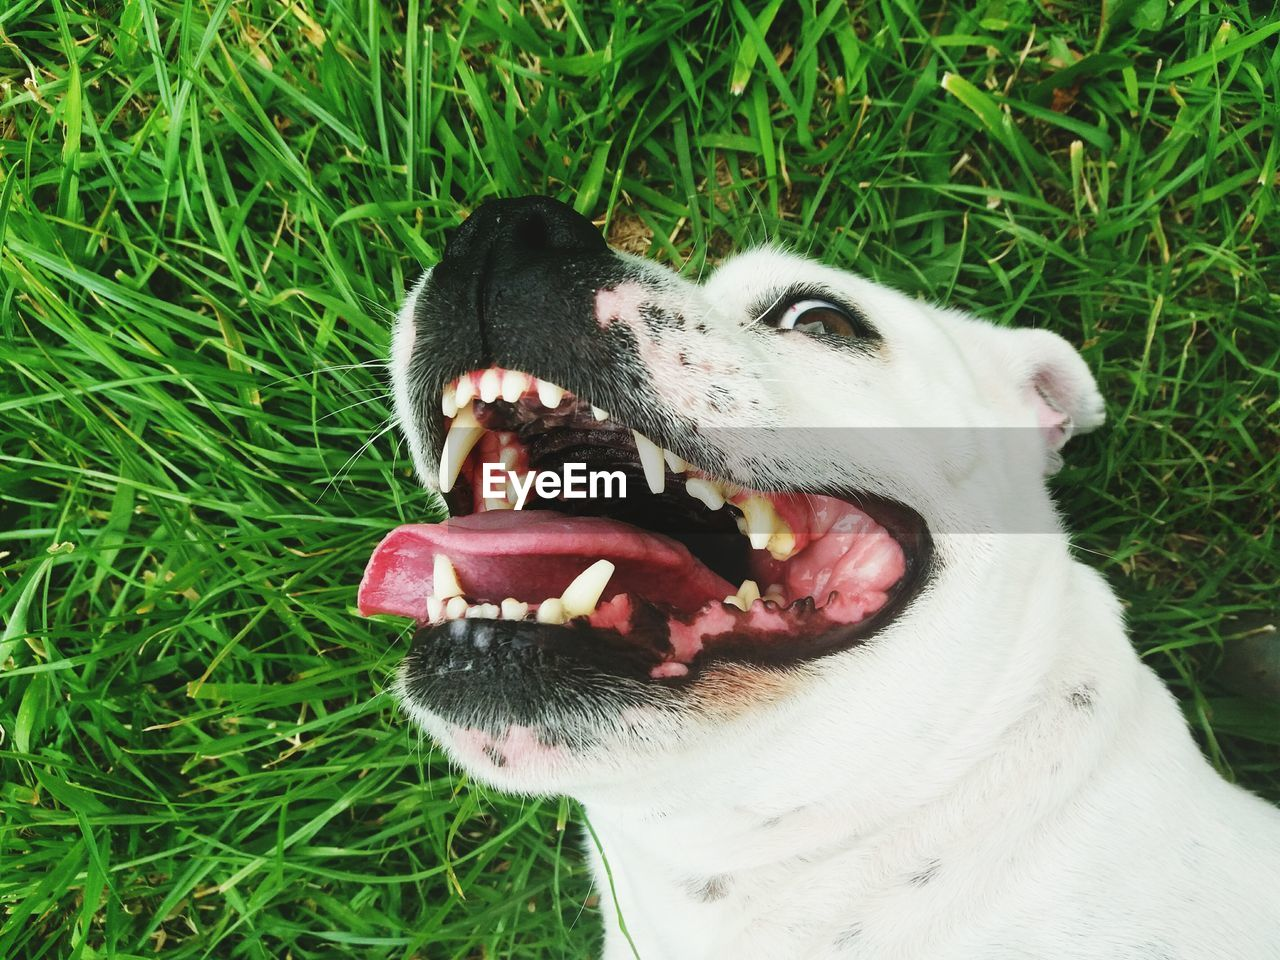 one animal, animal themes, dog, canine, animal, domestic, pets, domestic animals, grass, mammal, plant, vertebrate, mouth open, mouth, field, land, green color, nature, animal body part, close-up, no people, animal head, animal tongue, outdoors, animal teeth, animal mouth